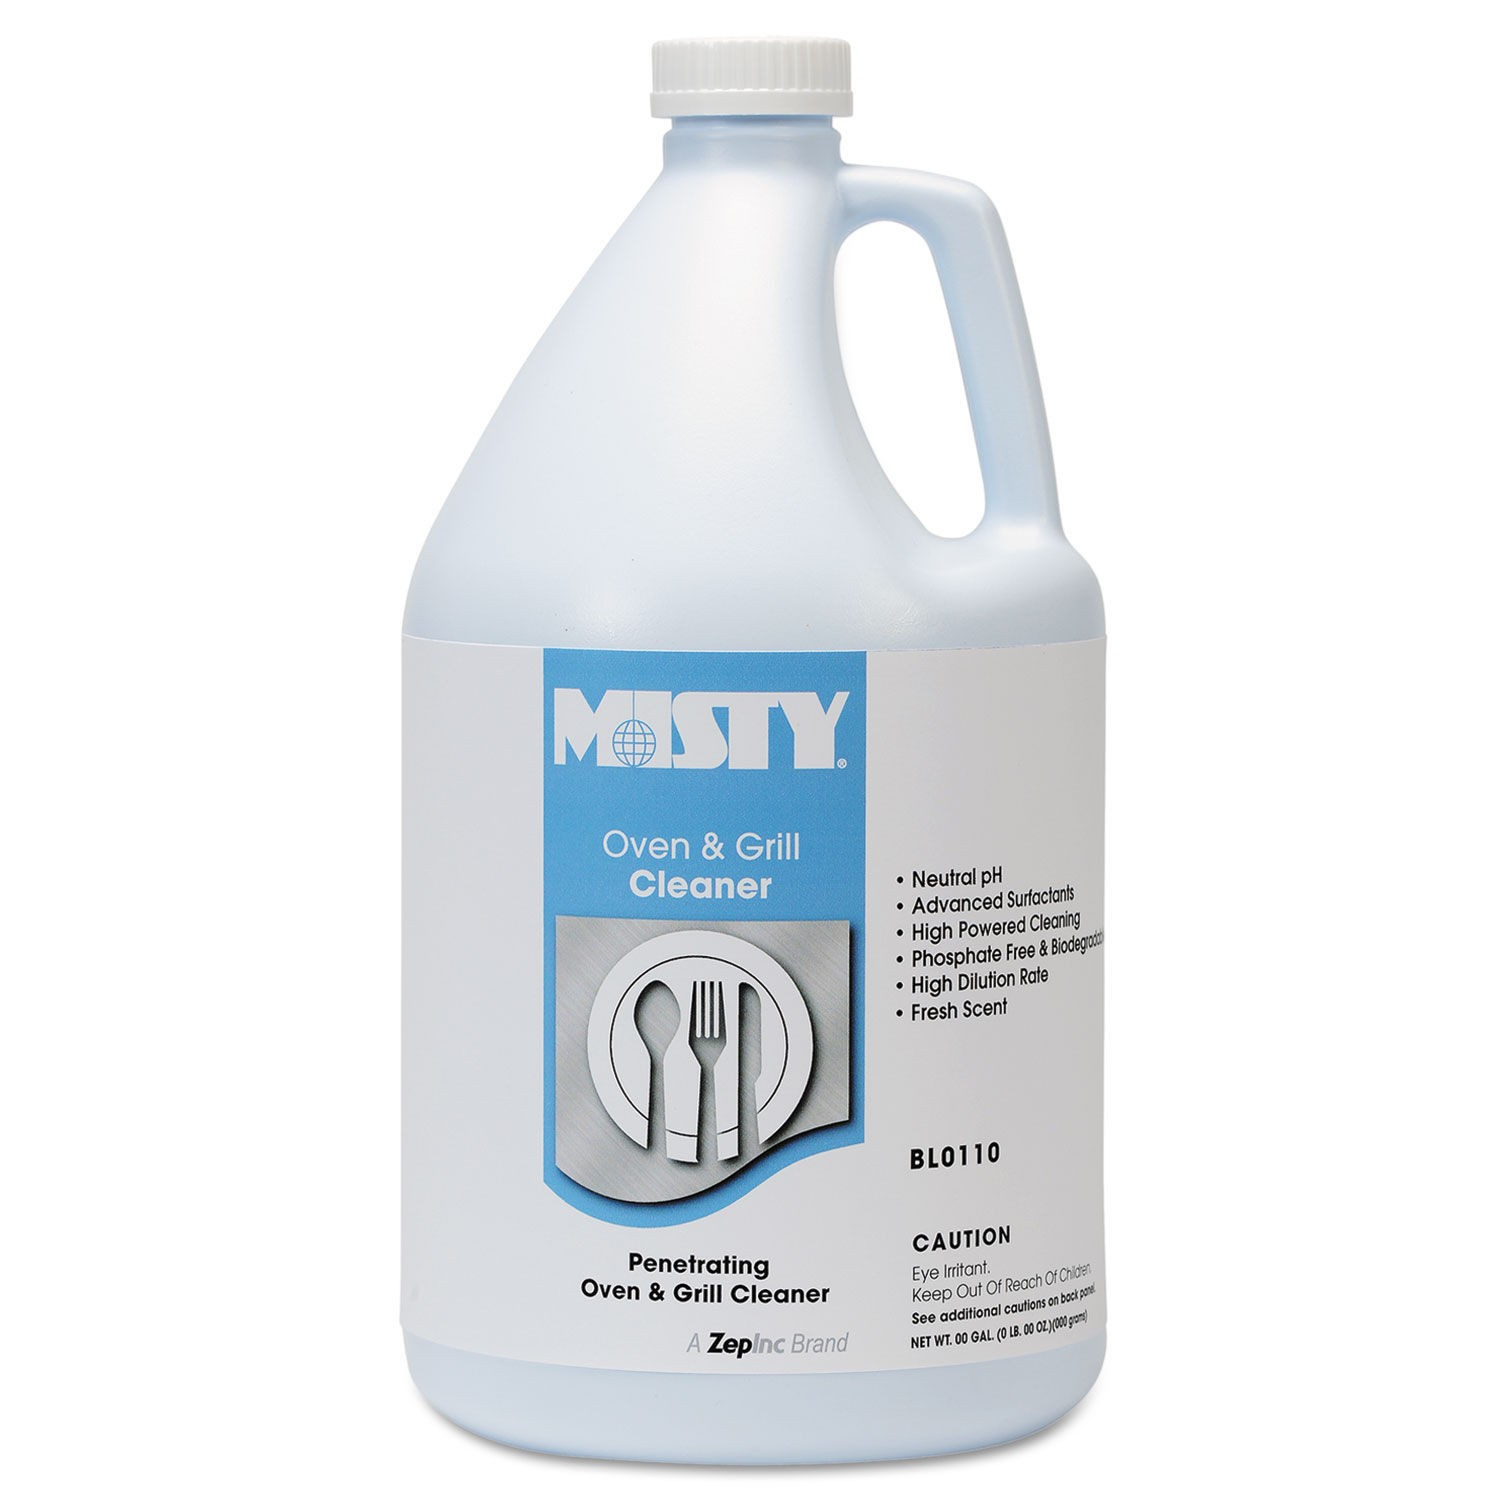 Misty Heavy-Duty Oven & Grill Cleaner, Gallon, Ready-to-Use